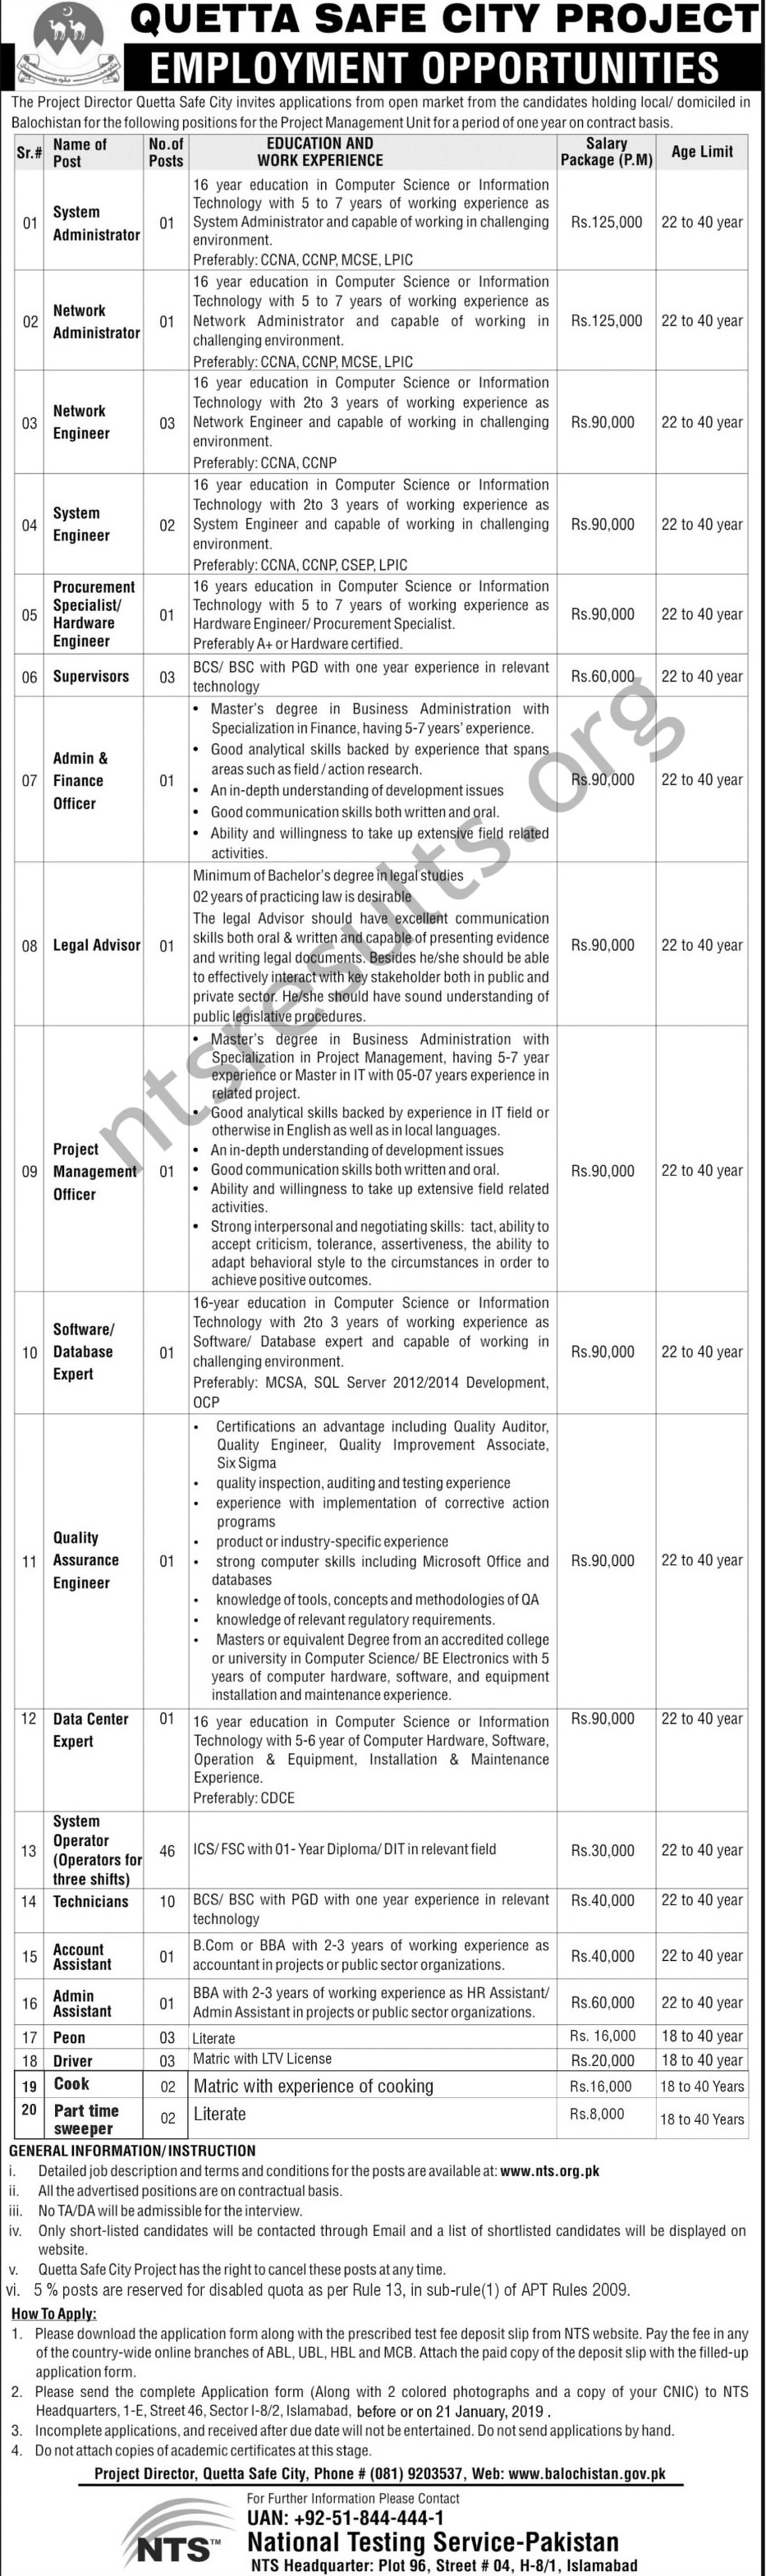 Quetta Safe City Jobs Via NTS